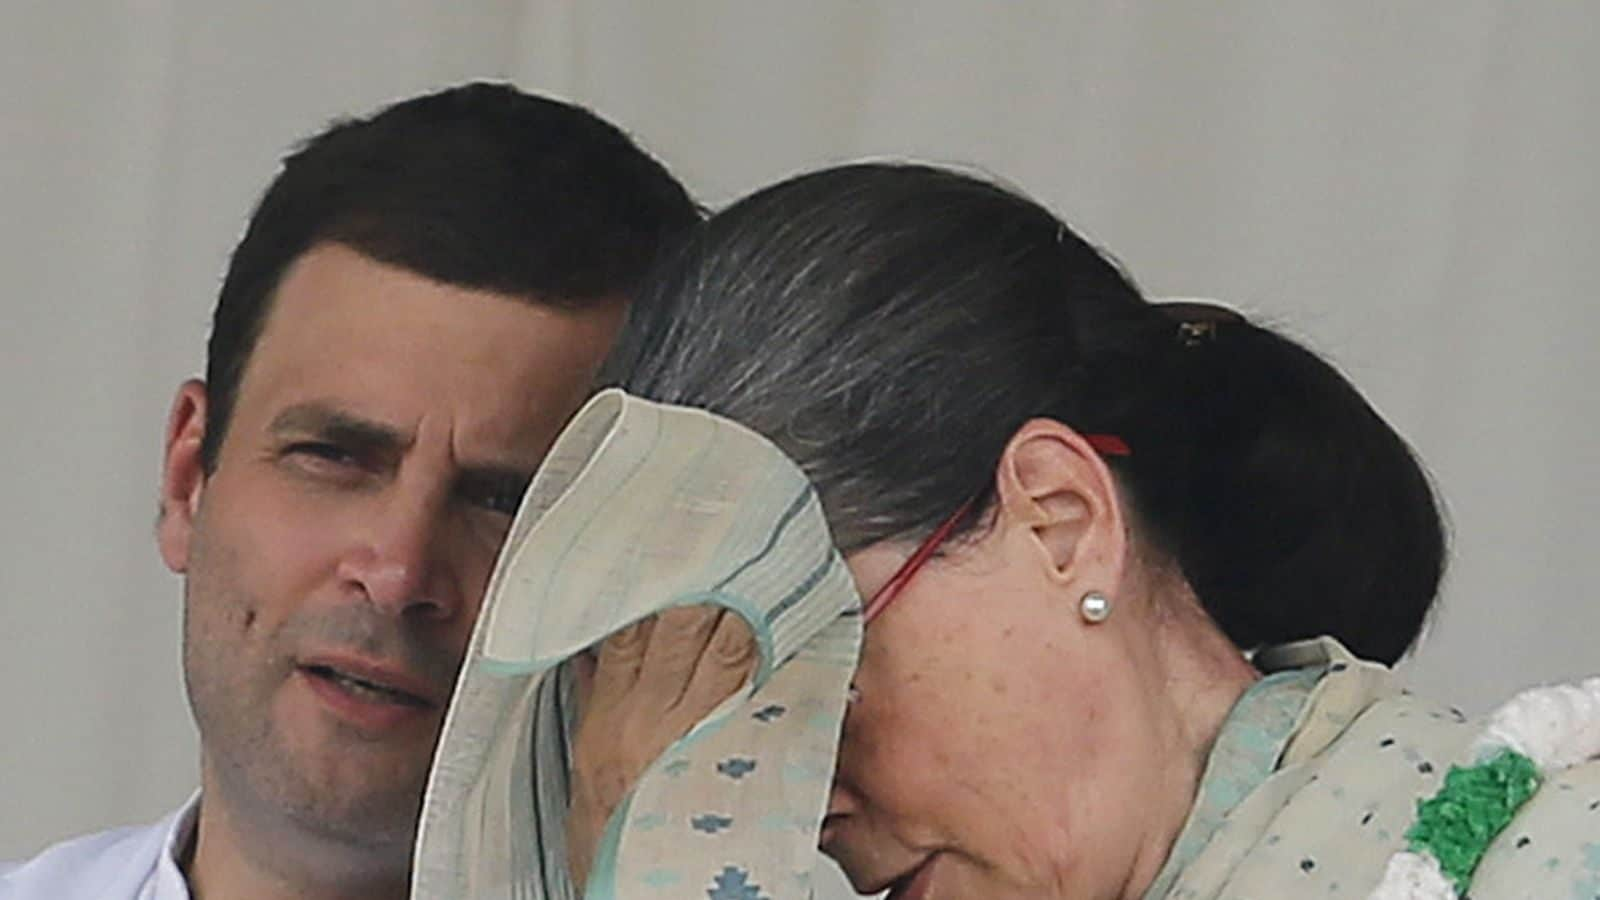 Pushy G23, Mercurial TMC & Elections Ahead: Sonia Gandhi Still Holds Cong's Reins But Road to Revival Not Smooth